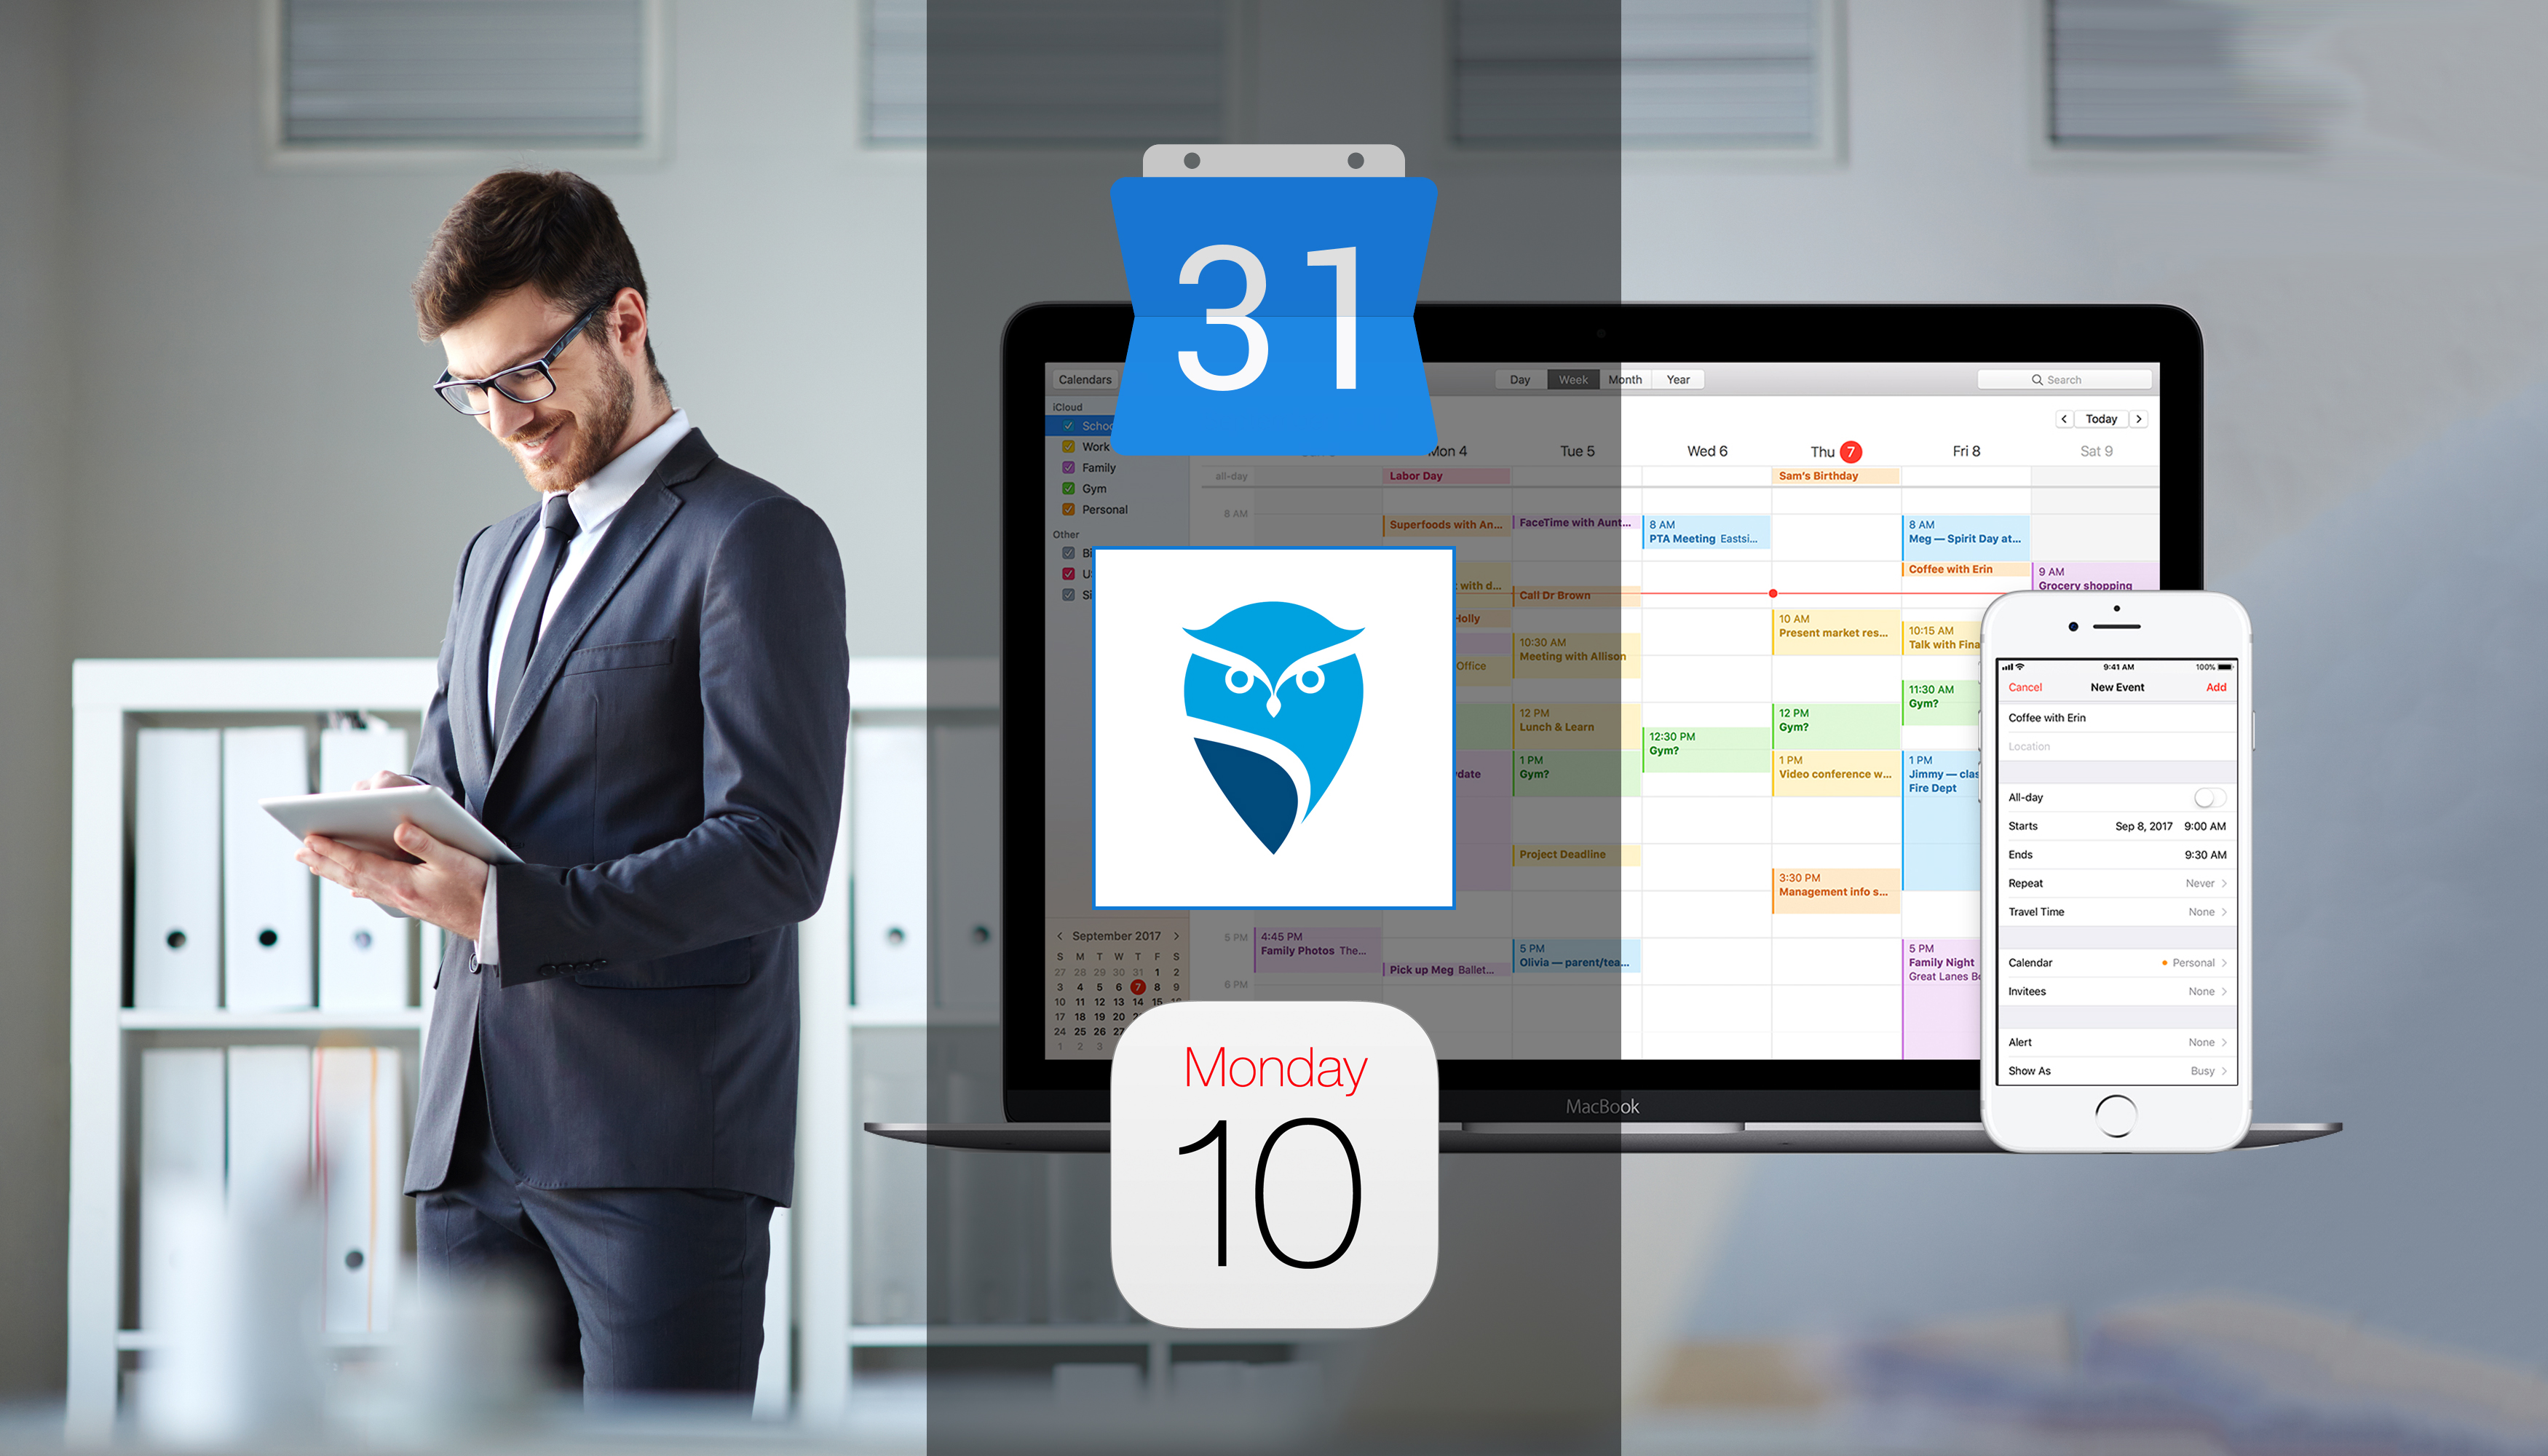 Sync Your Court Appearance Schedule with Google Calendar and iCal With One Click